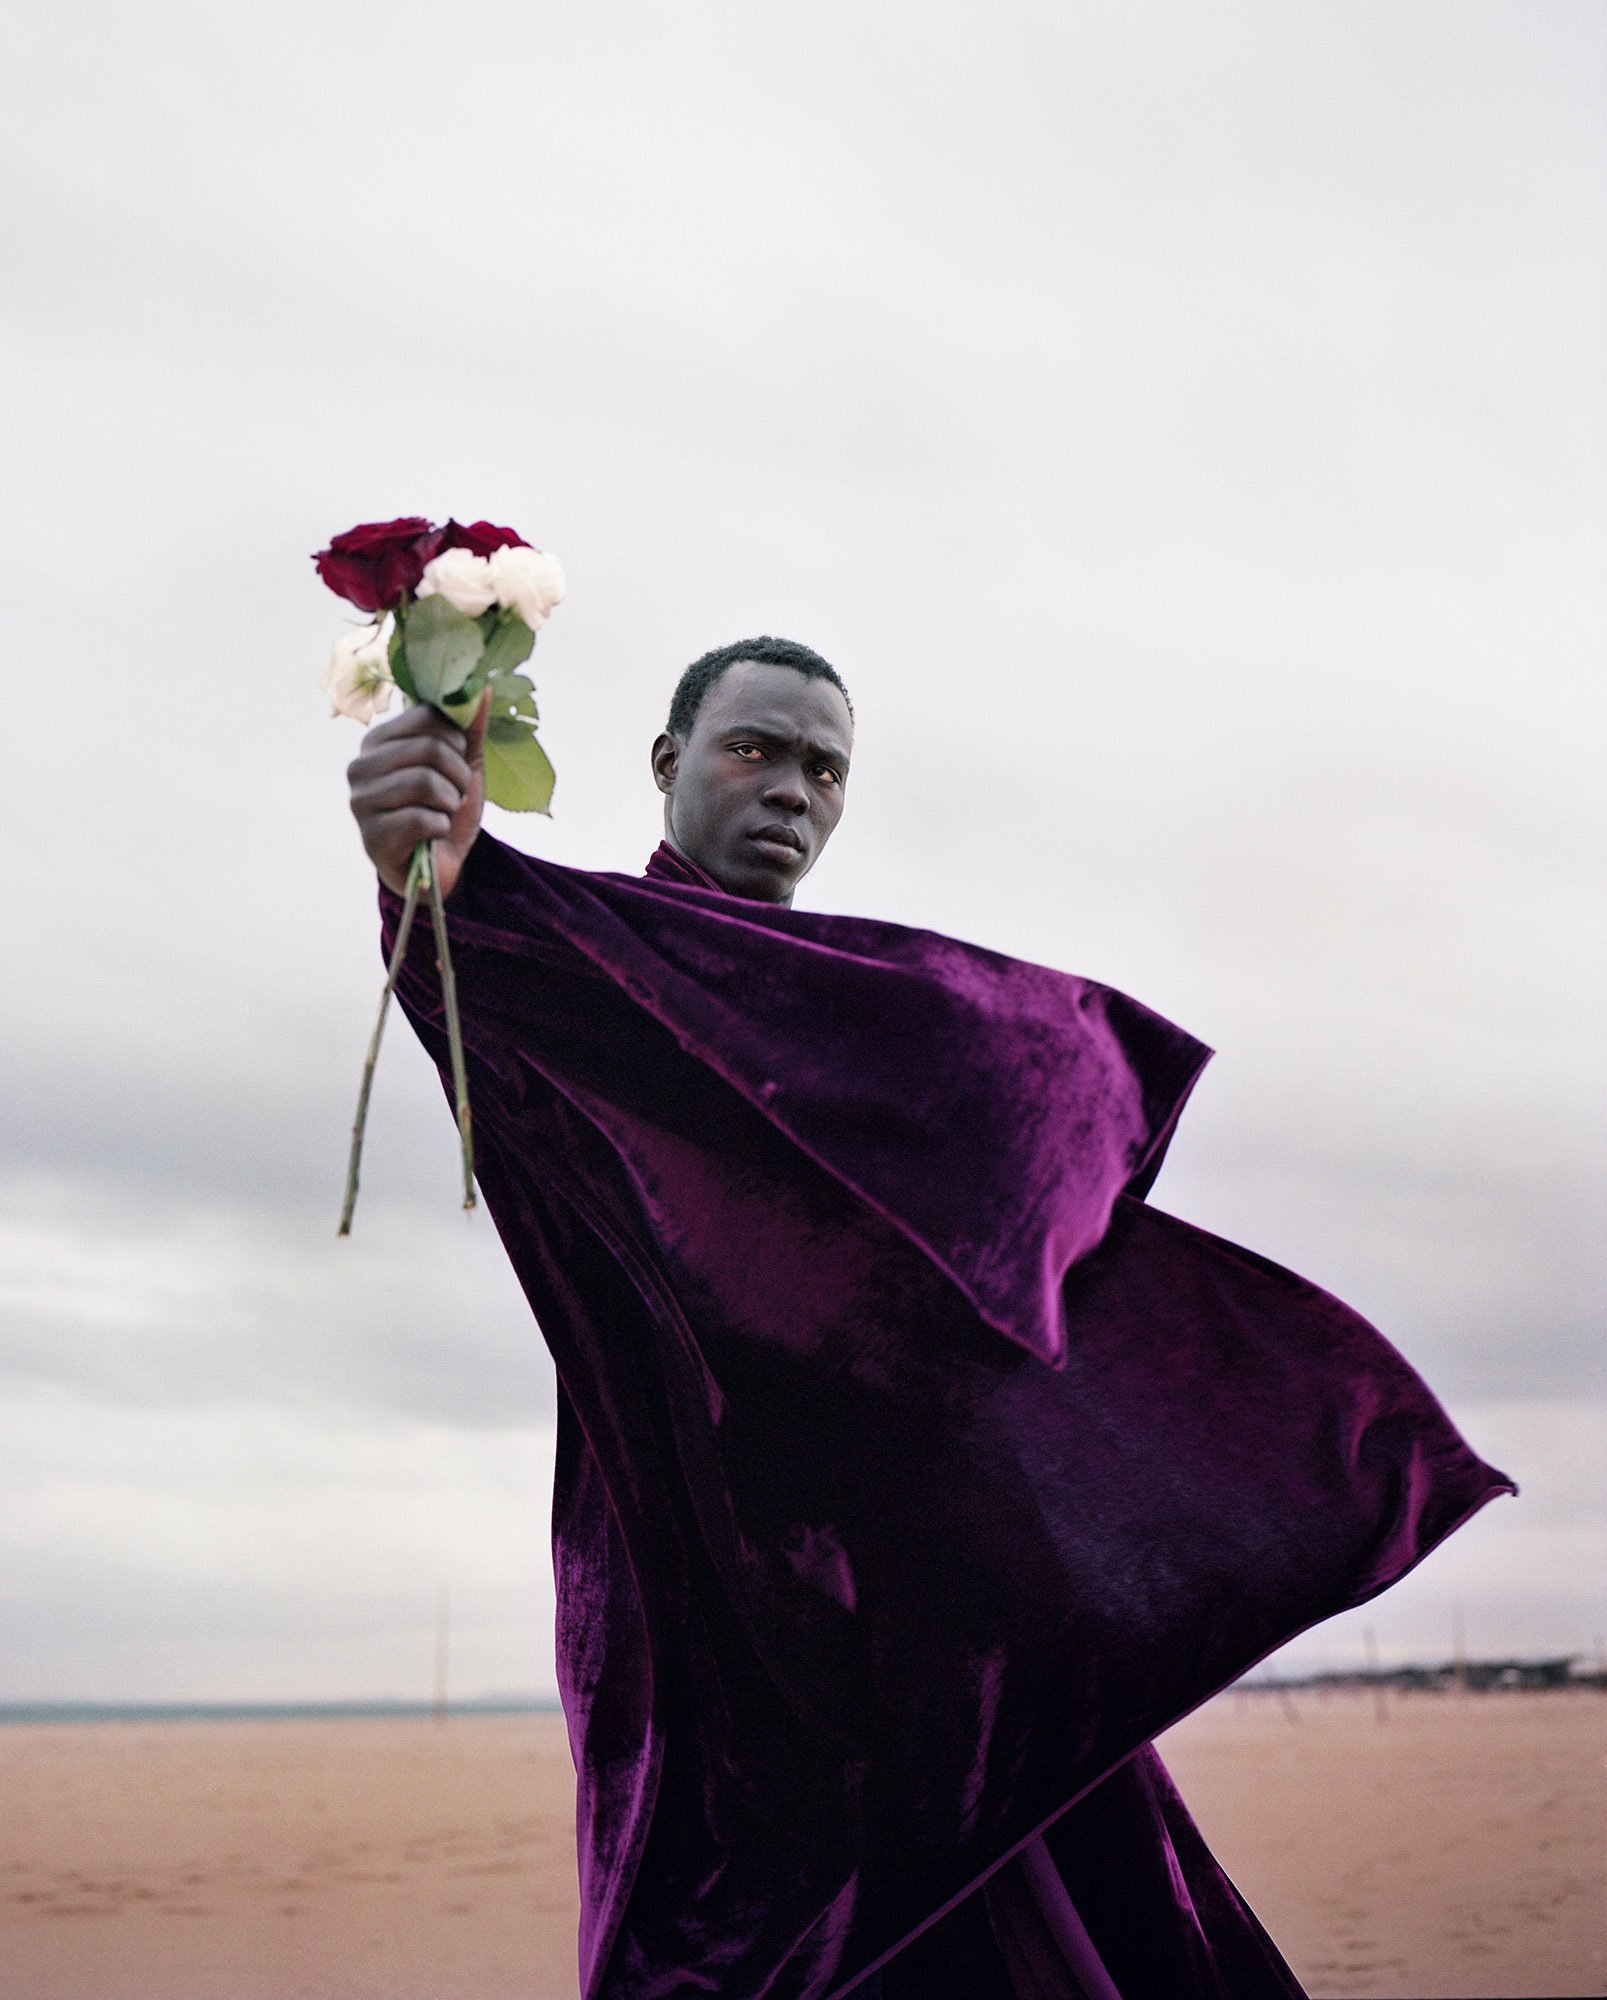 man on a beach holding a flower, color photography of the migration into Europe in 2015 2016